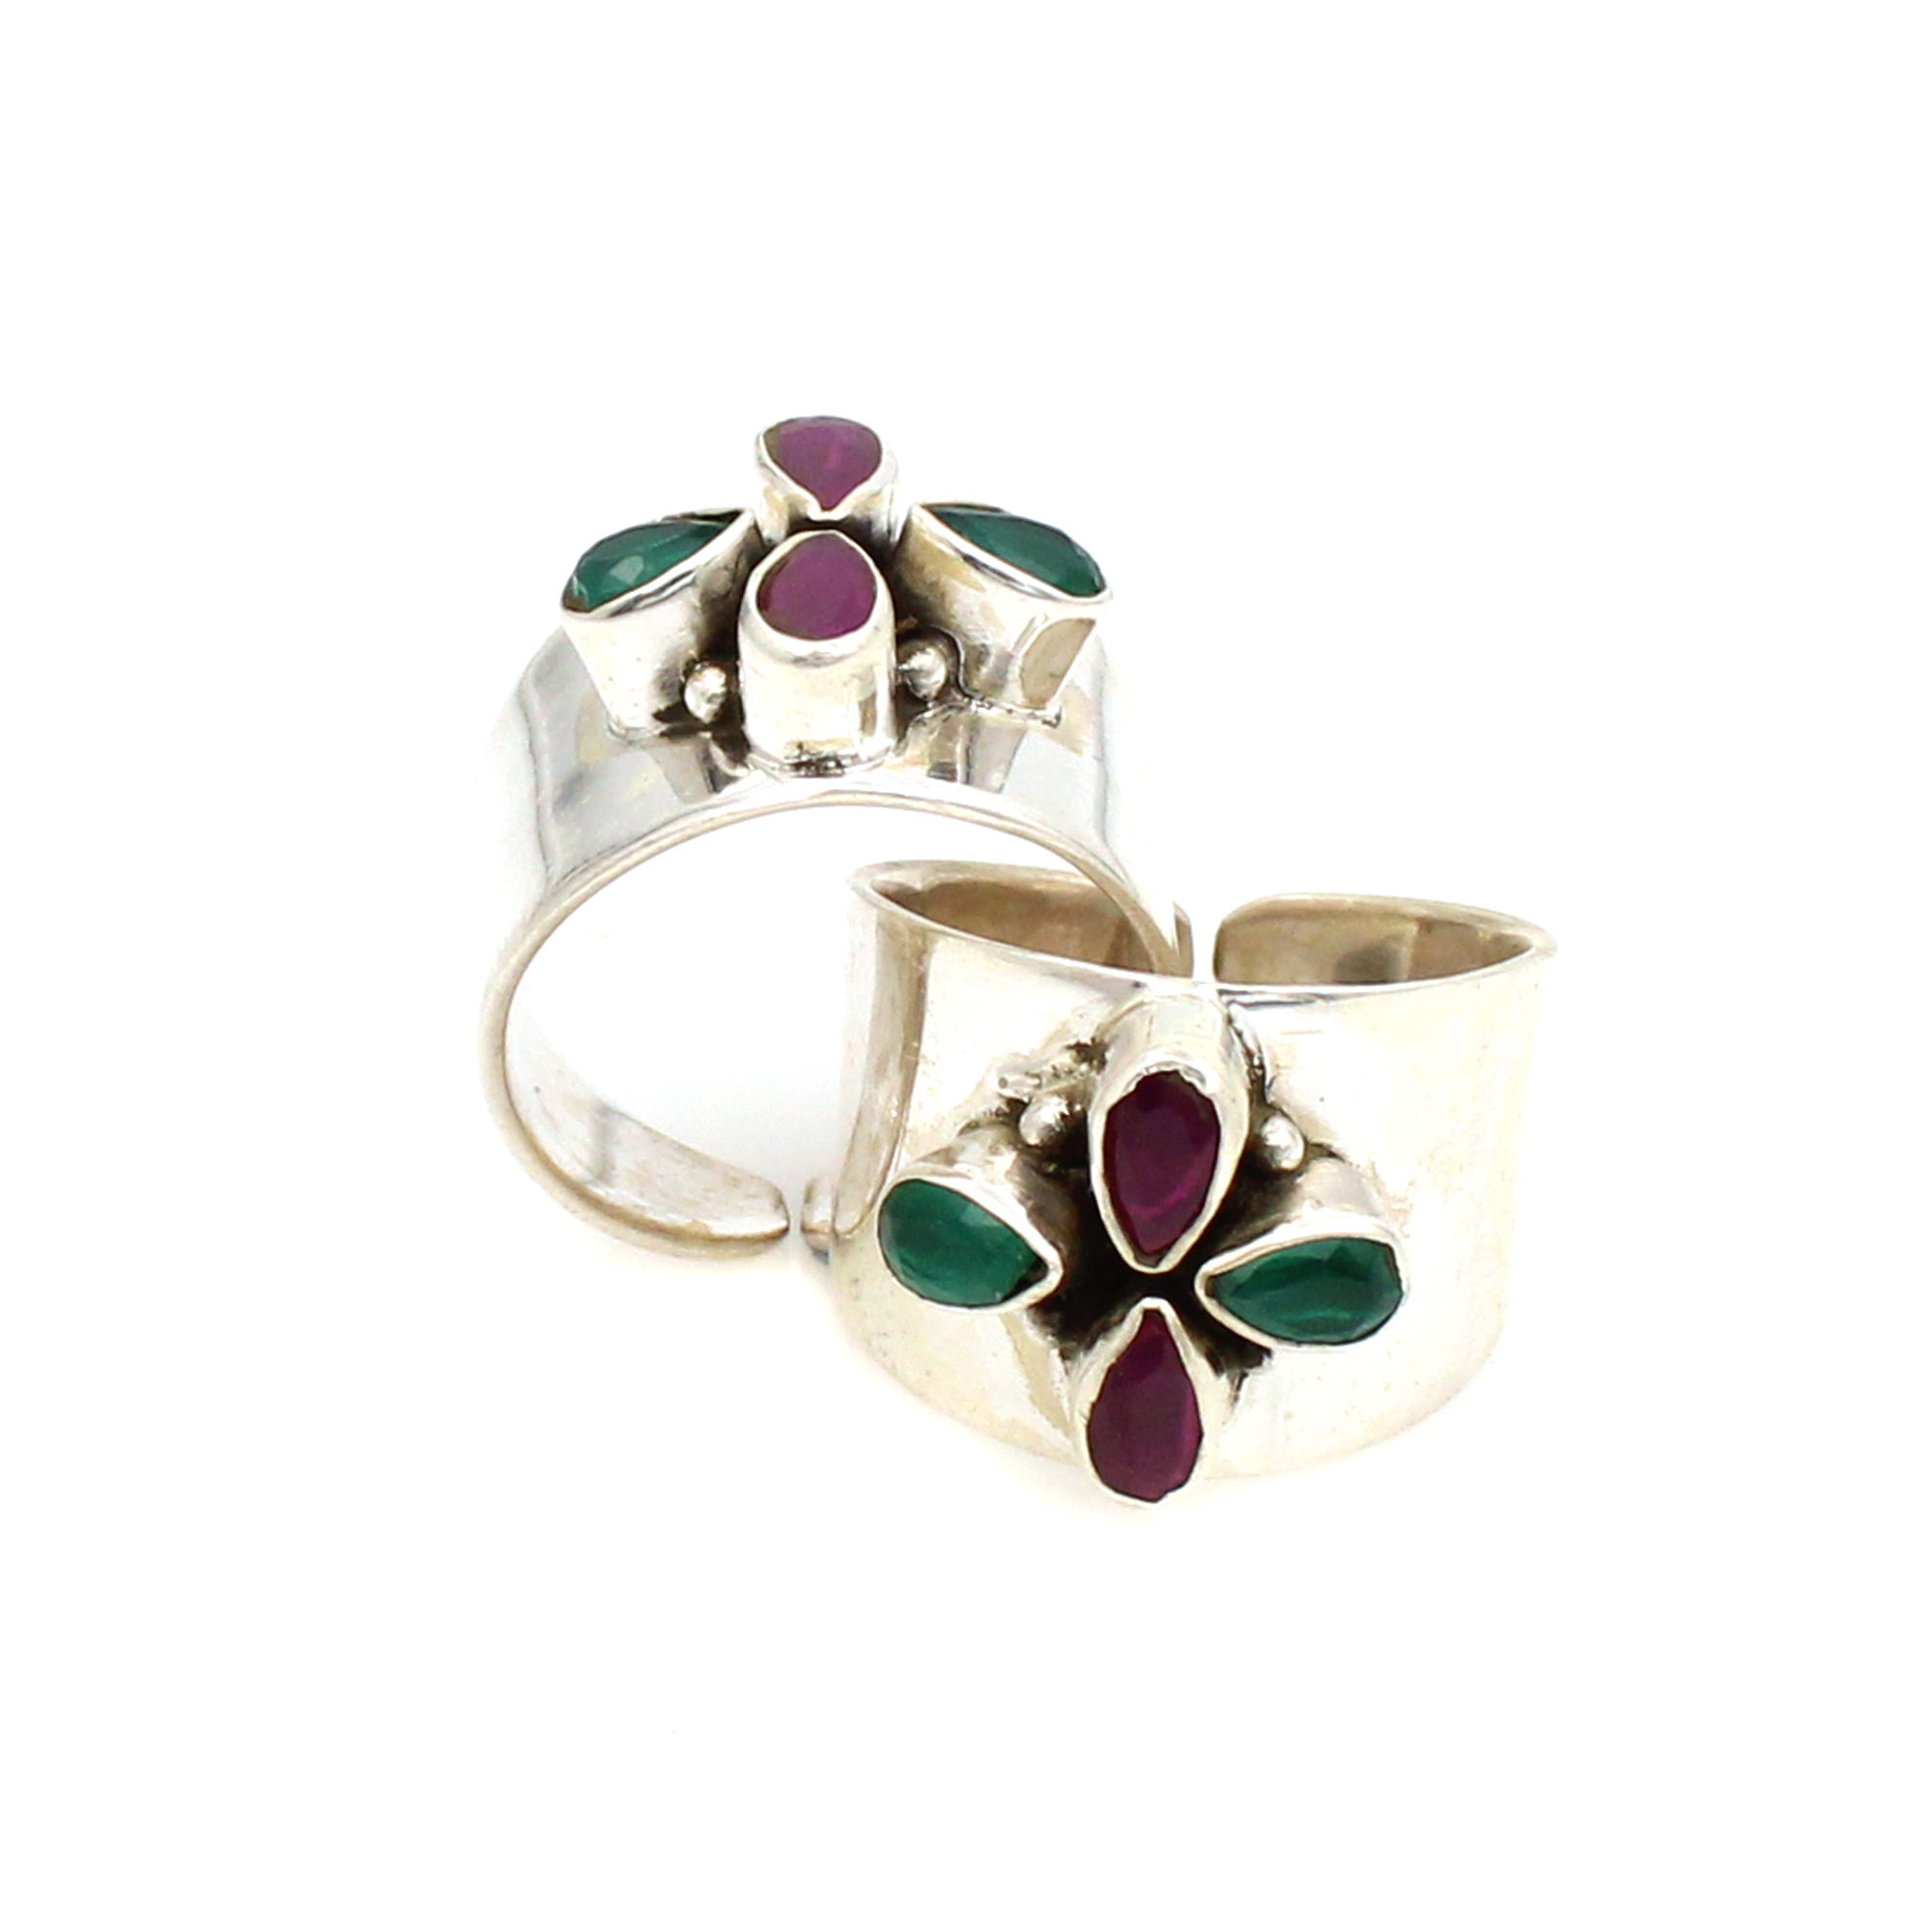 Drop Shipping Zilveren Ring Breed Sterling Zilver Teen Ring Met Marquise Vorm Granaat En Emerald Stone